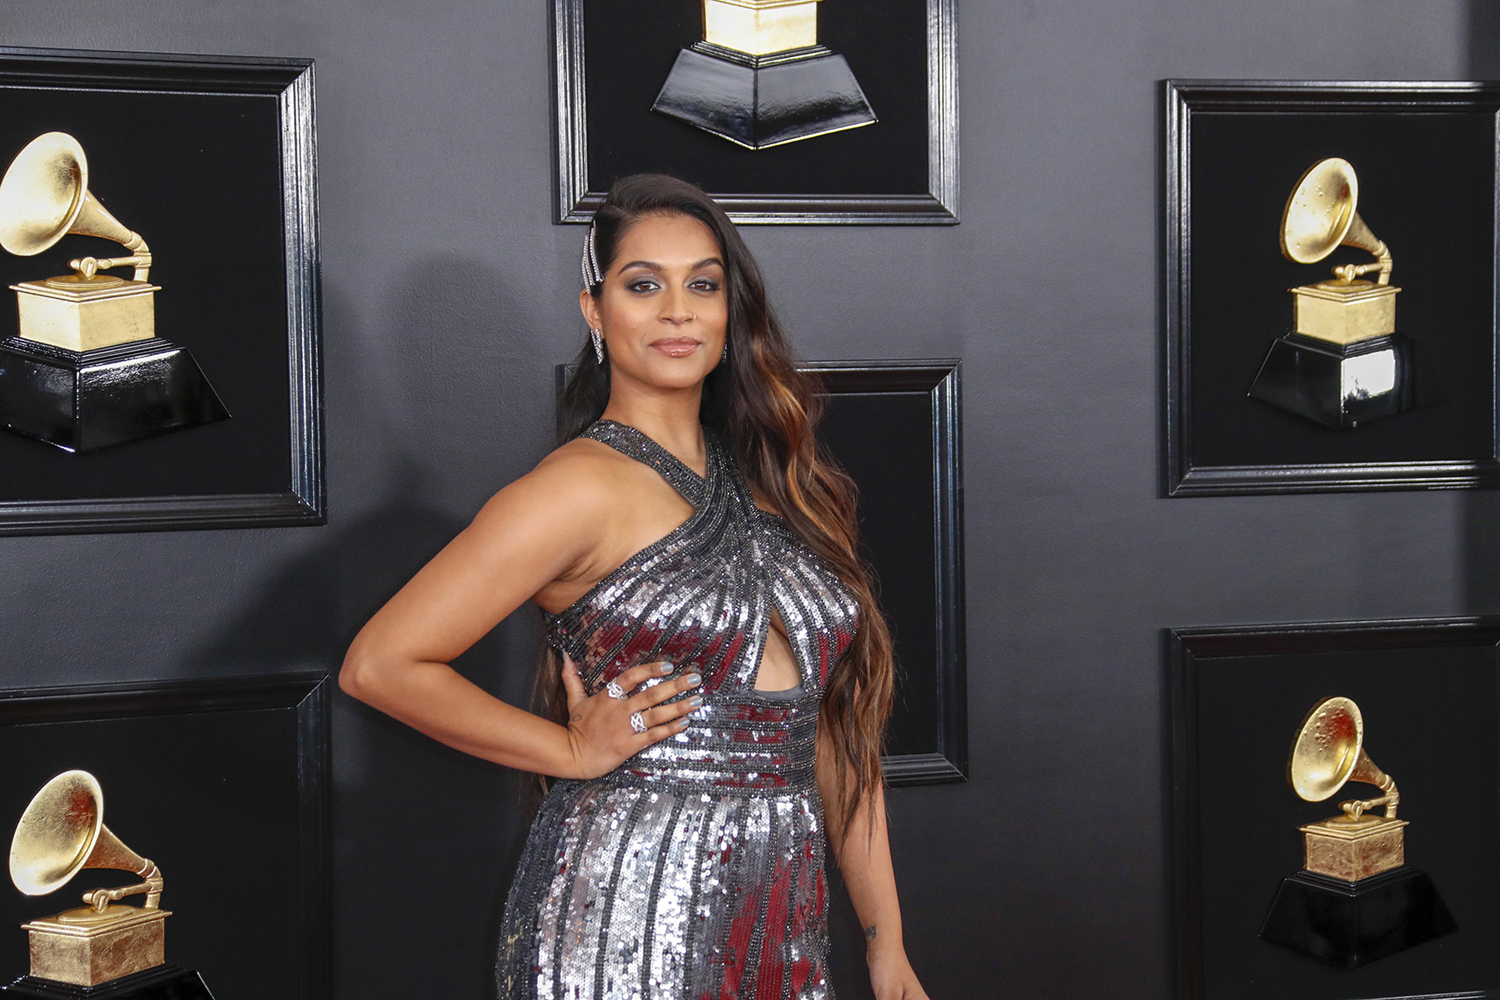 Lilly Singh arrives at the 61st Grammy Awards at Staples Center in Los Angeles on Feb. 10.